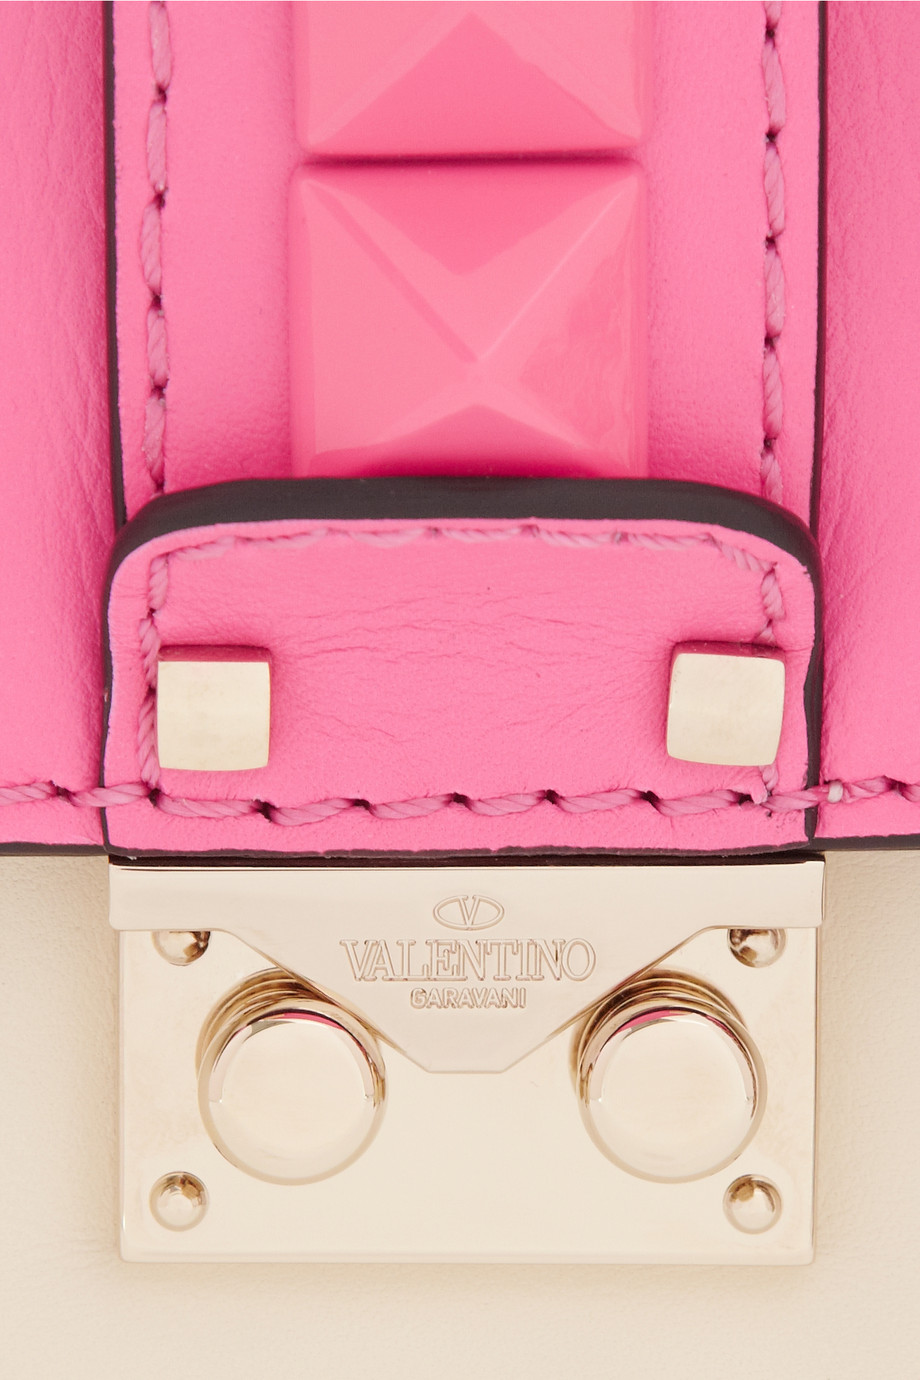 valentino-glam-rock-studded-leather-shoulder-bag-pink-4